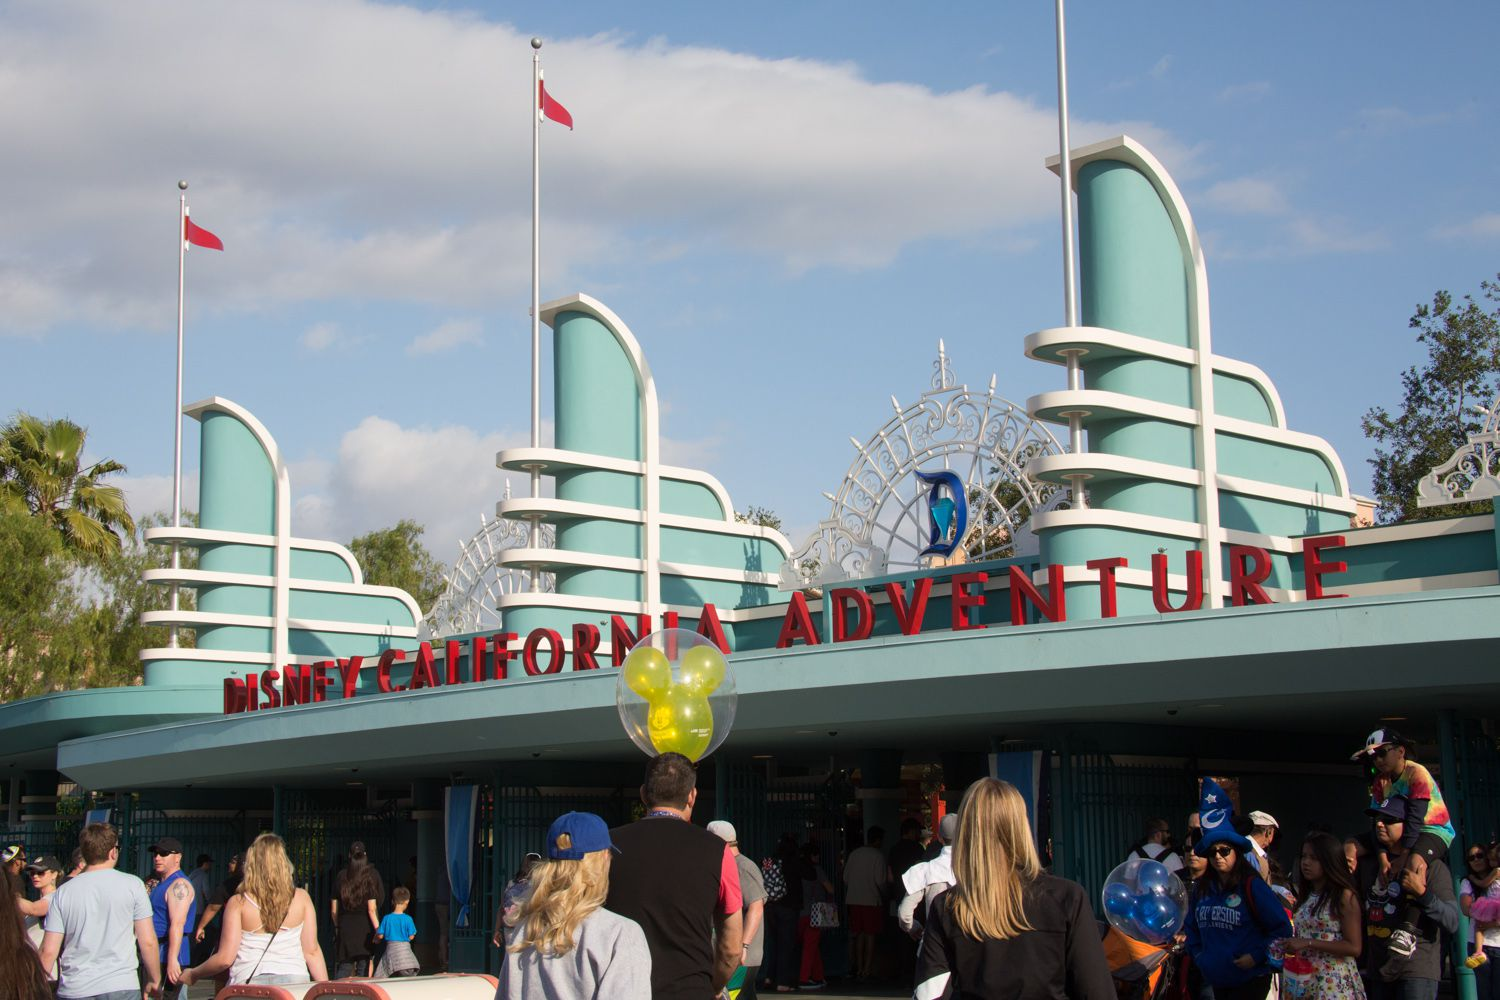 California Adventure Rides And Attractions By Location